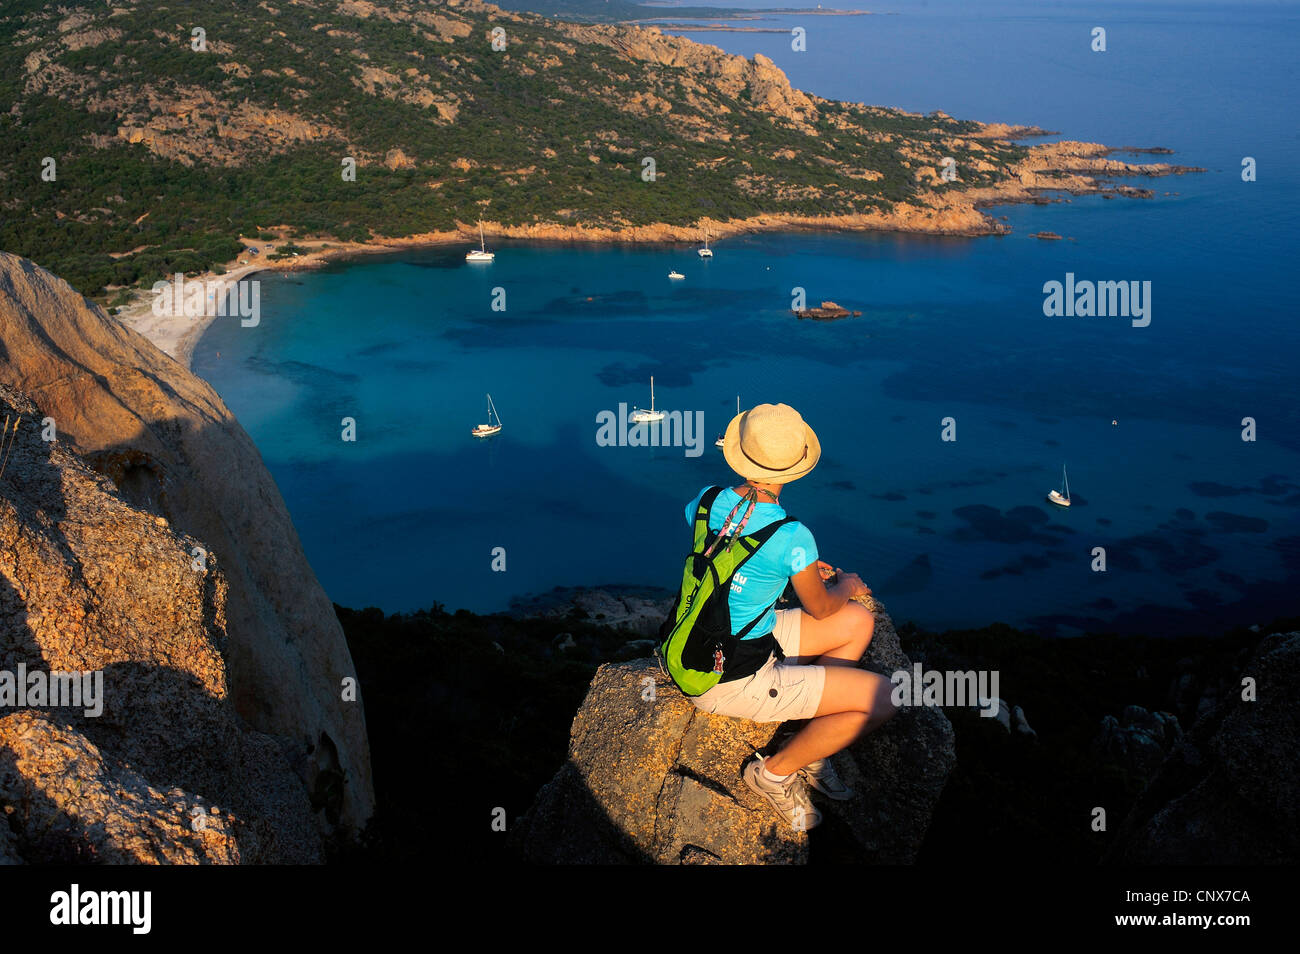 female hiker sittin on a rock over the bay of Roccapina, France, Corsica - Stock Image